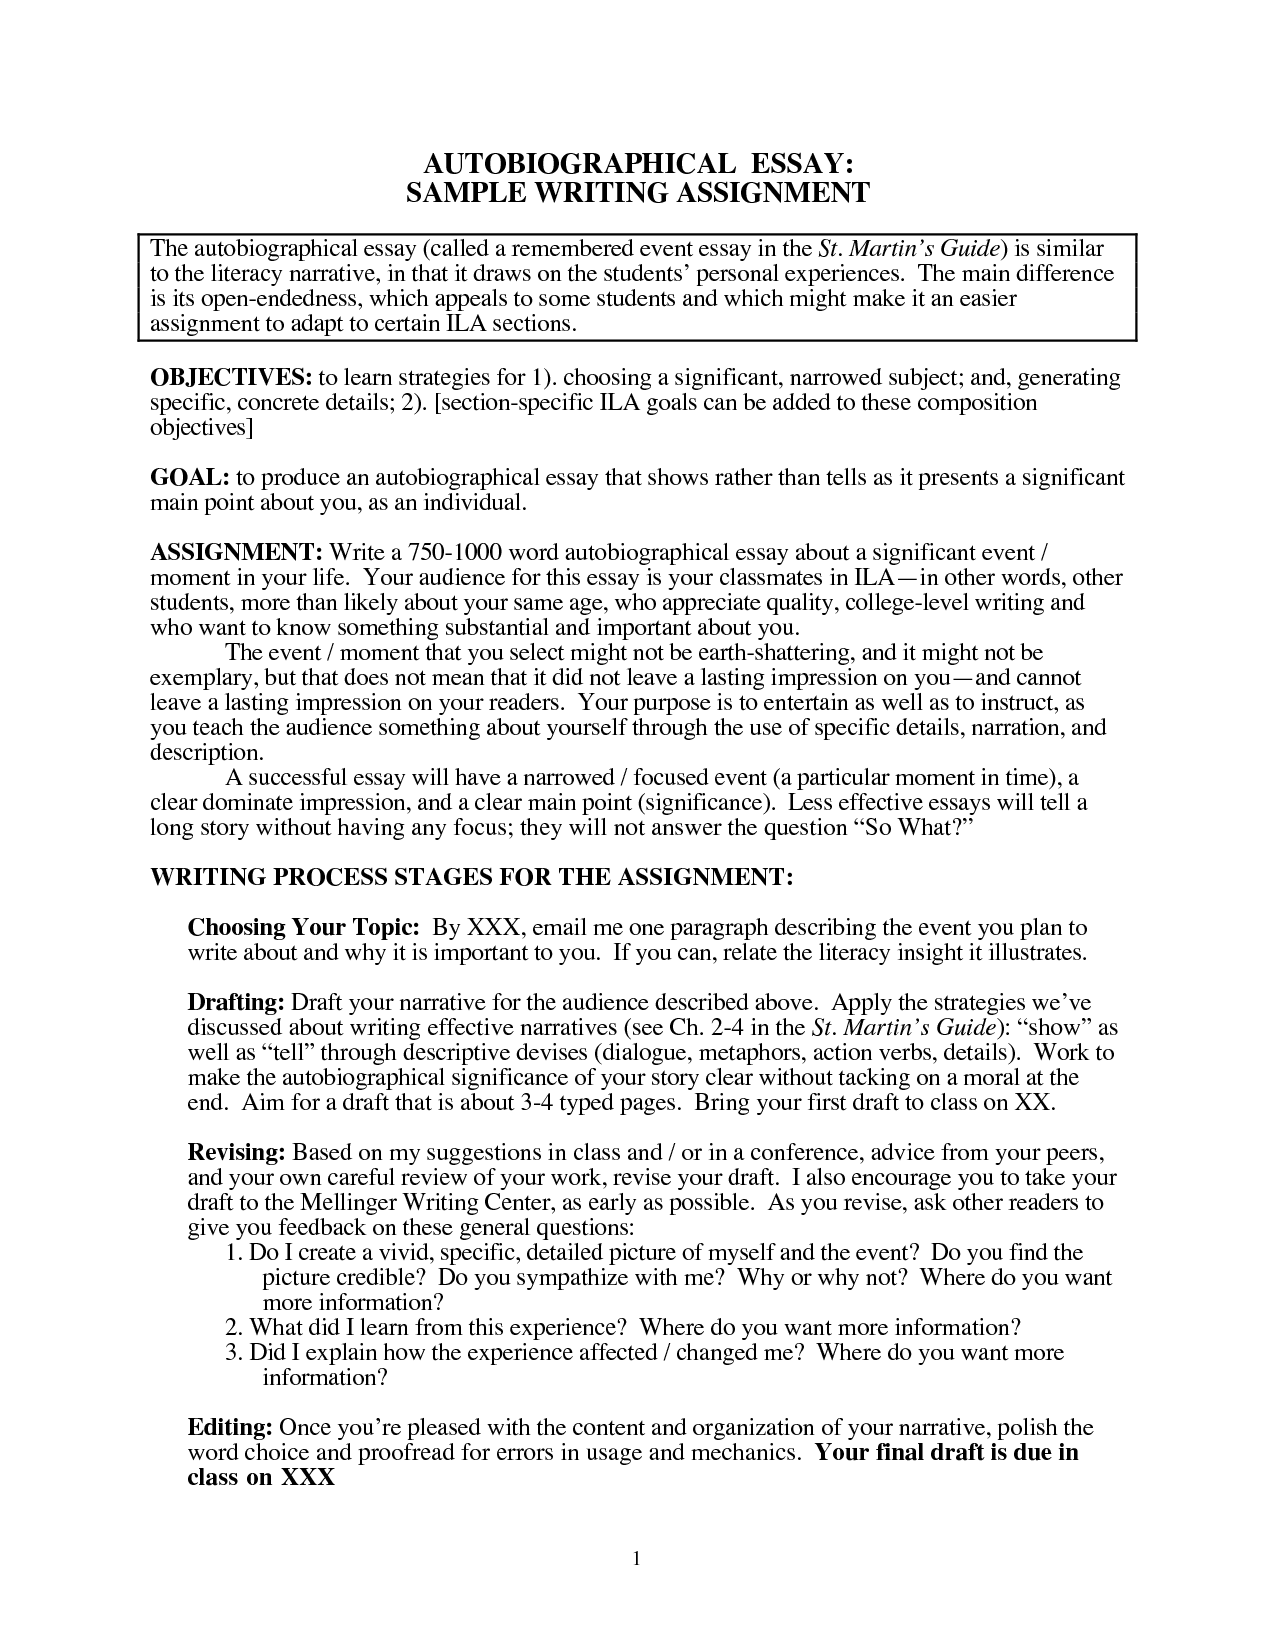 007 Essay Example Sample Autobiographic Sketch College Autobiography Knowing Imagine For Awesome How To Write Examples Good Incredible A Biographical Bibliography Biography About An Author Pdf Full